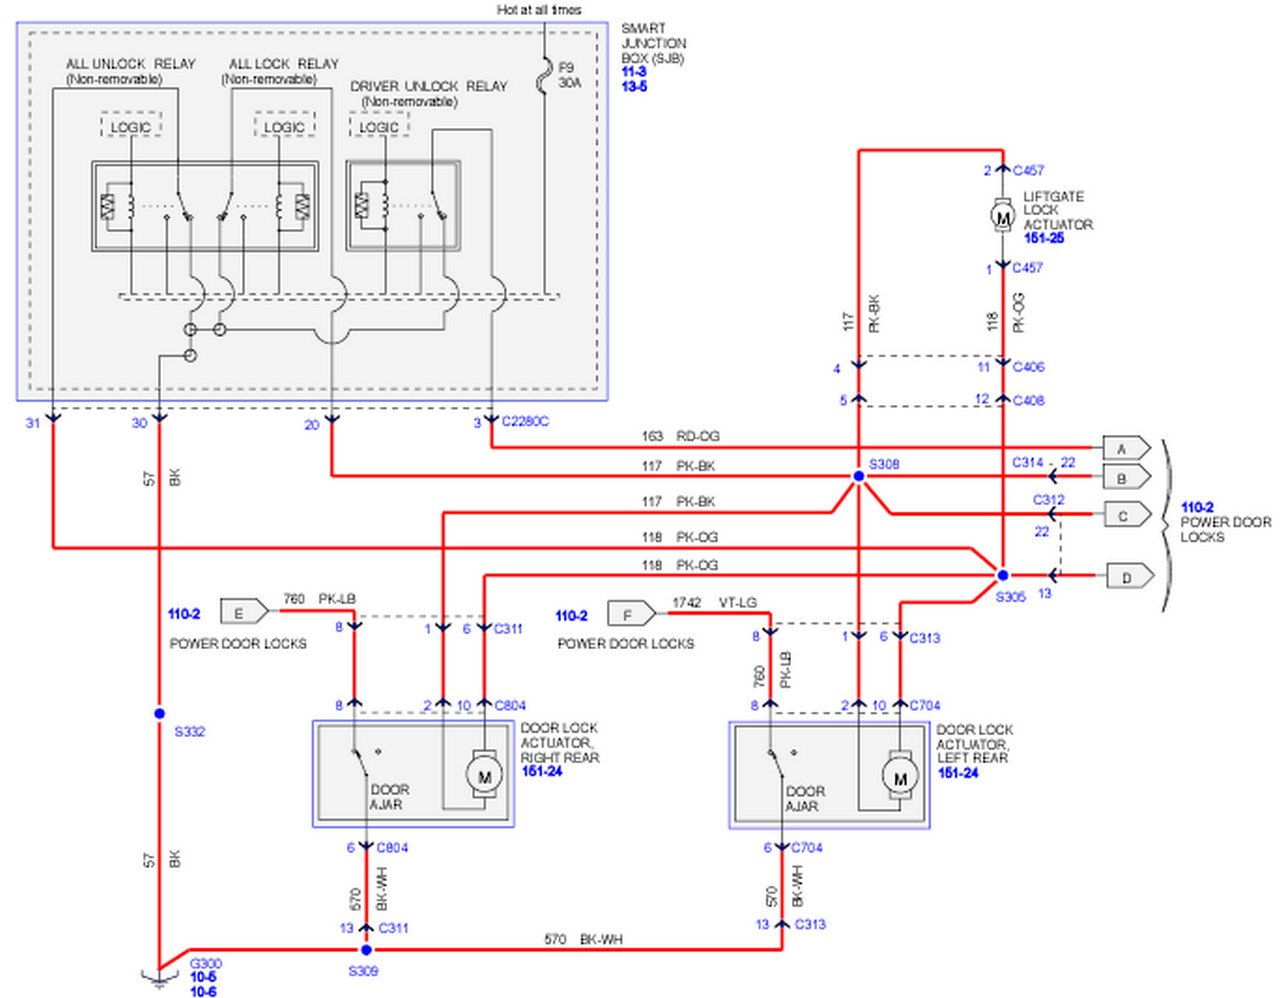 2006 F250 Wire Diagram Door Manual Of Wiring Ford F 250 Lock Images Gallery Working On A Escape Trying To Find The Relay For